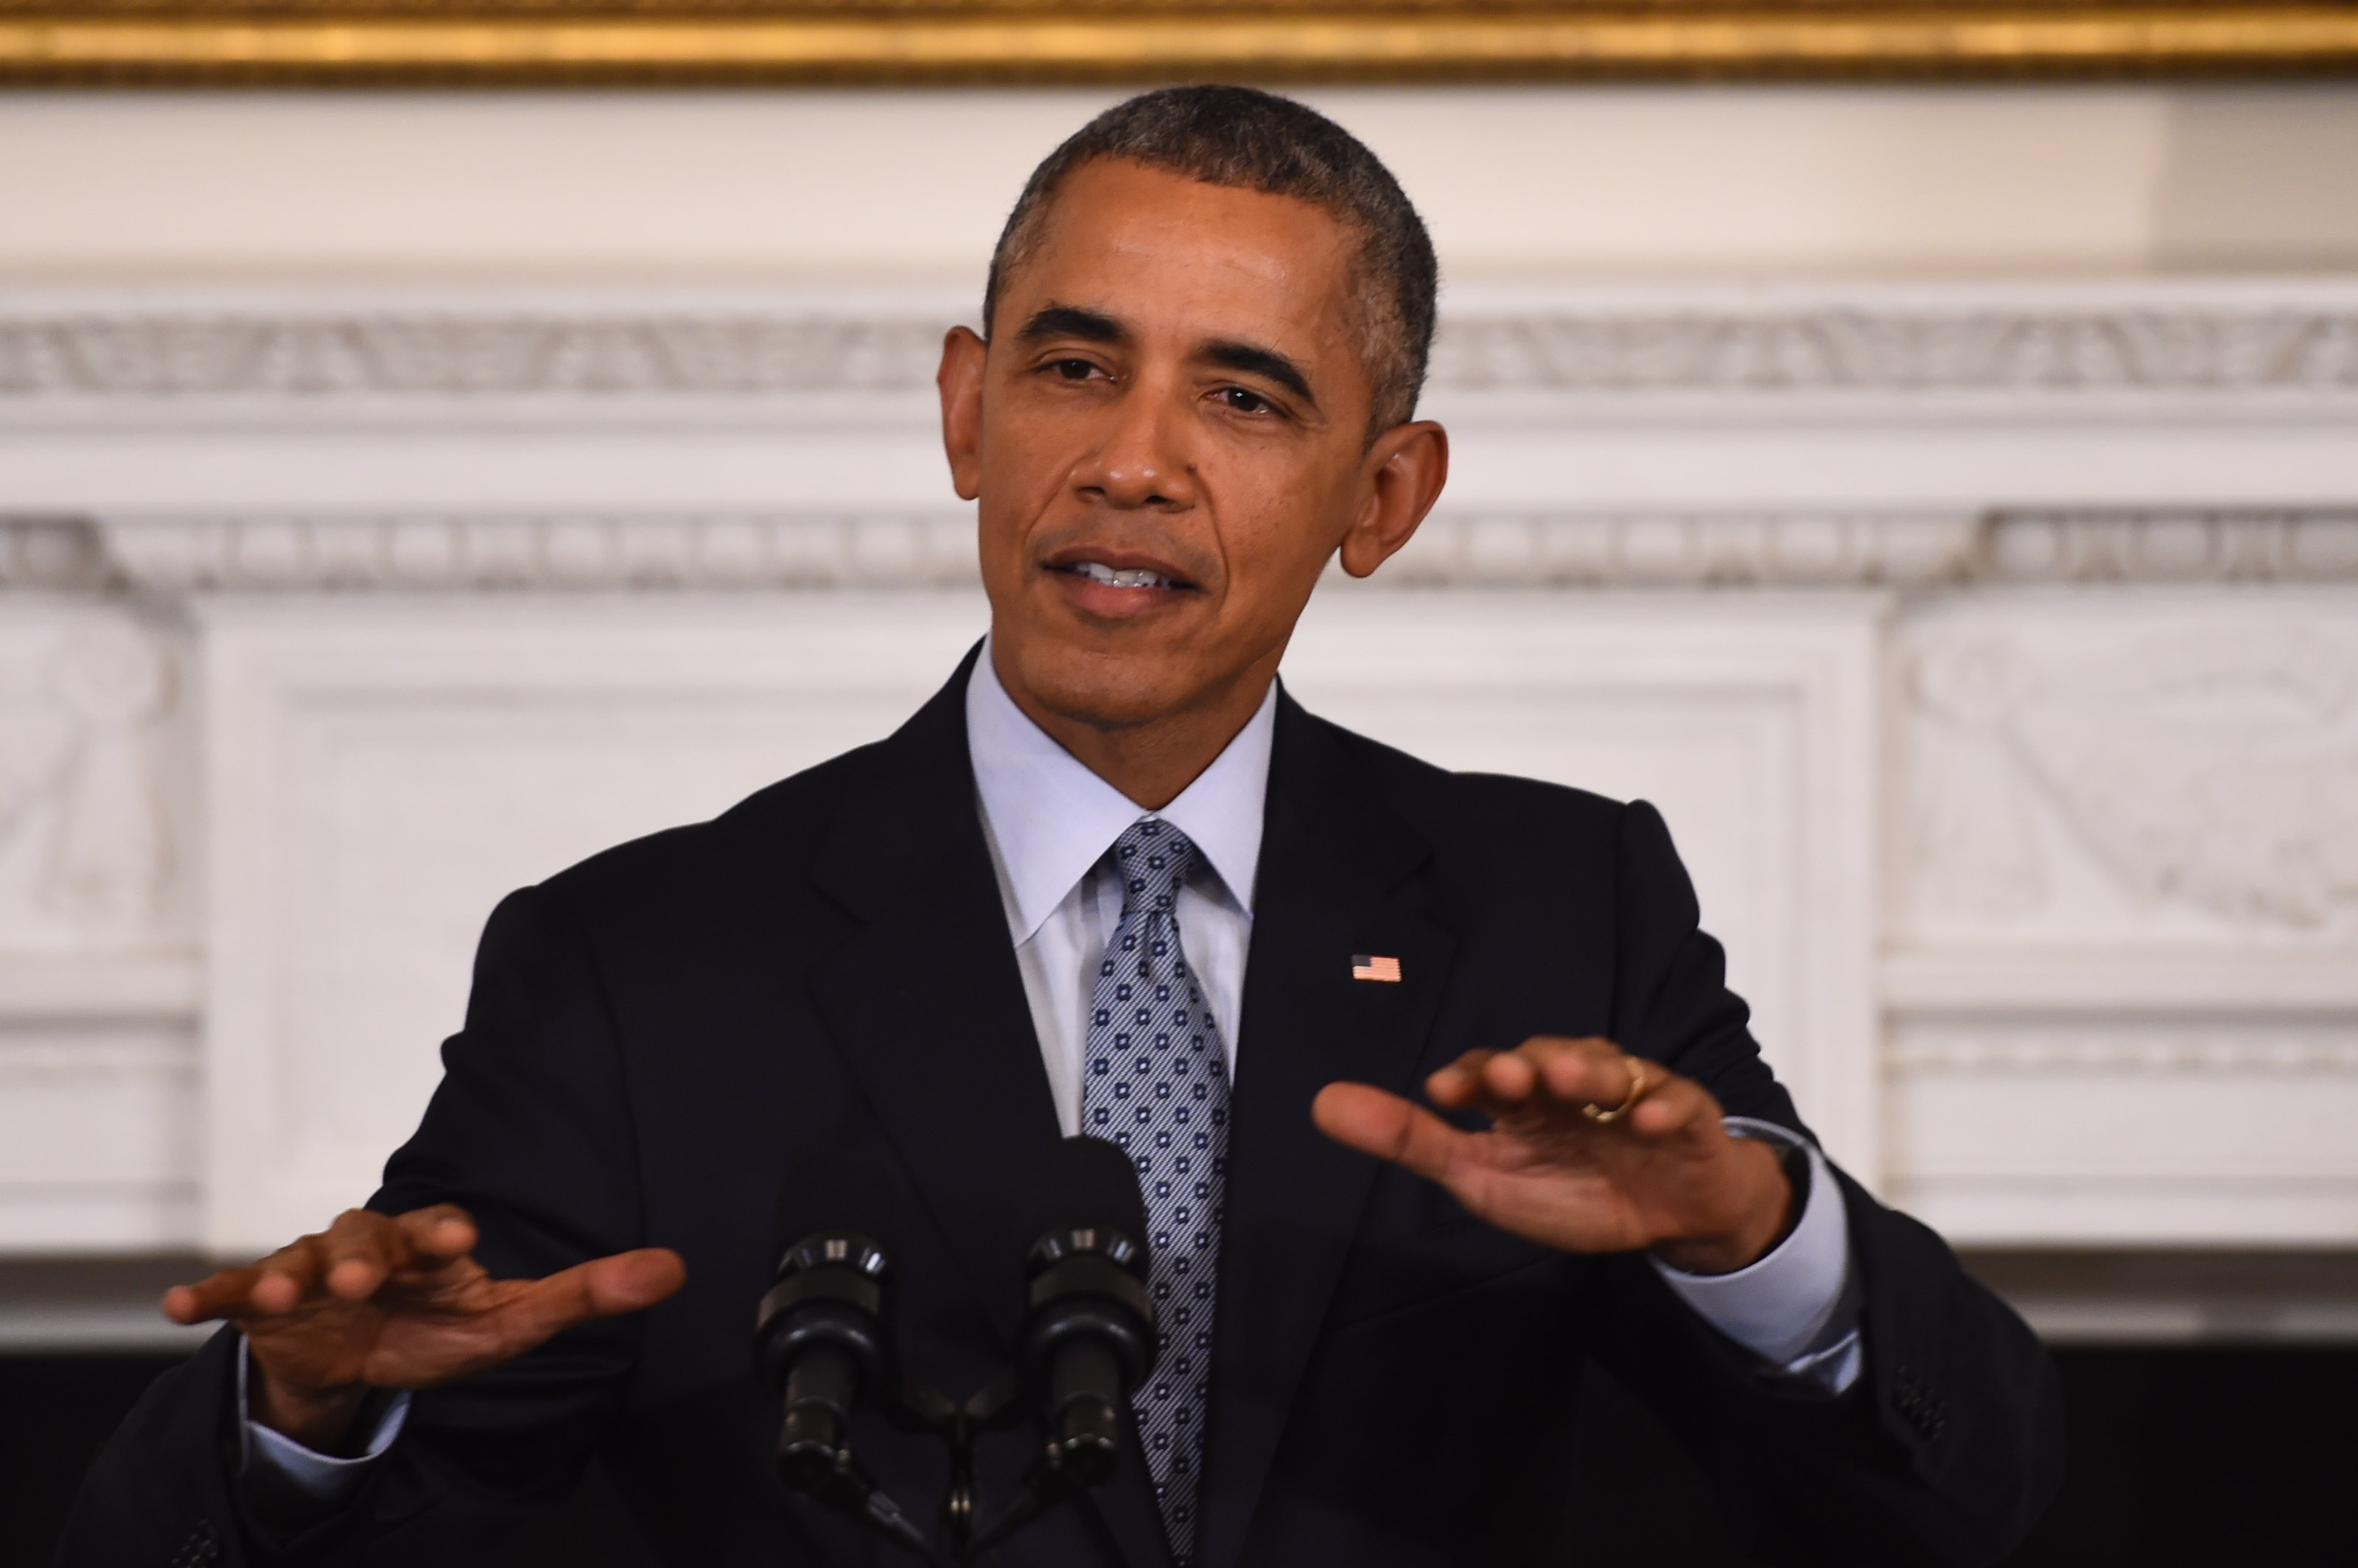 """US President Barack Obama speaks during a press conference at the White House on October 2, 2015, in Washington, DC. Obama warned Friday that Russia's military engagement in Syria in support of strongman Bashar al-Assad is a """"recipe for disaster,"""" though Washington could still work with Moscow on reducing tensions. AFP PHOTO/JIM WATSON (Photo credit should read JIM WATSON/AFP/Getty Images)"""